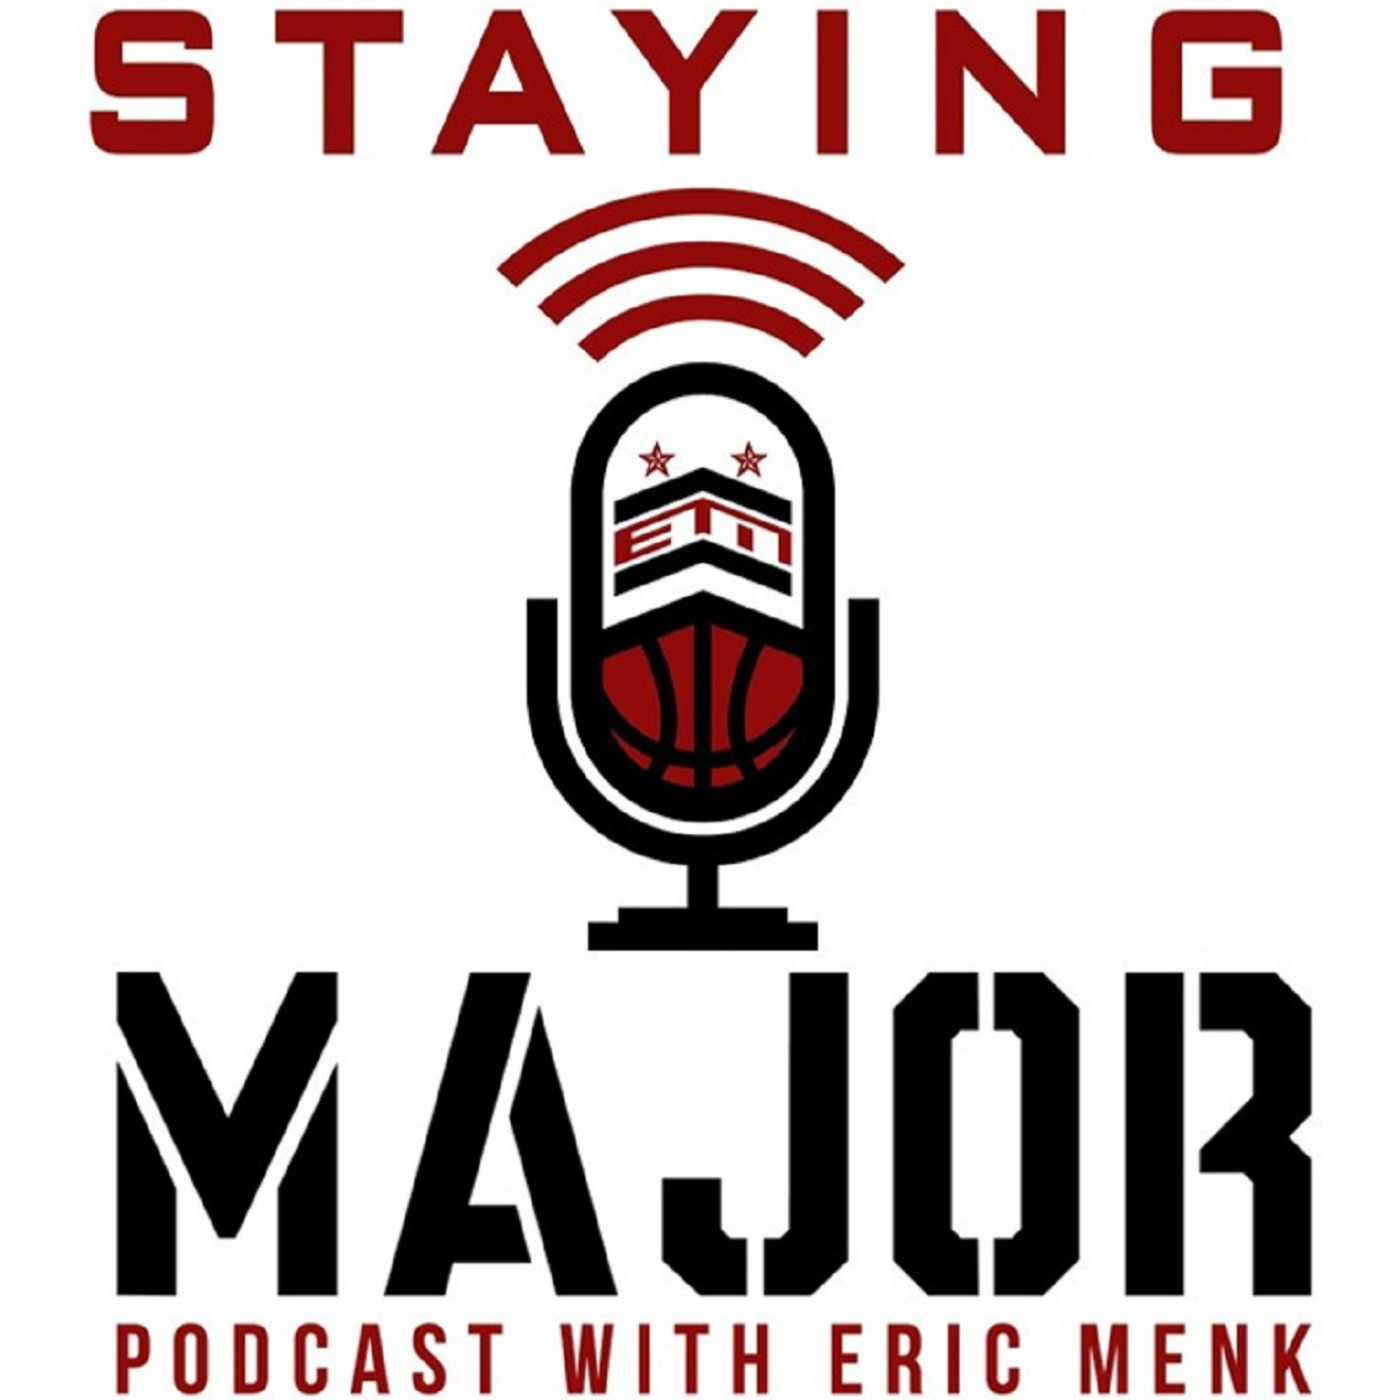 Staying MAJOR Podcast with Eric Menk show art